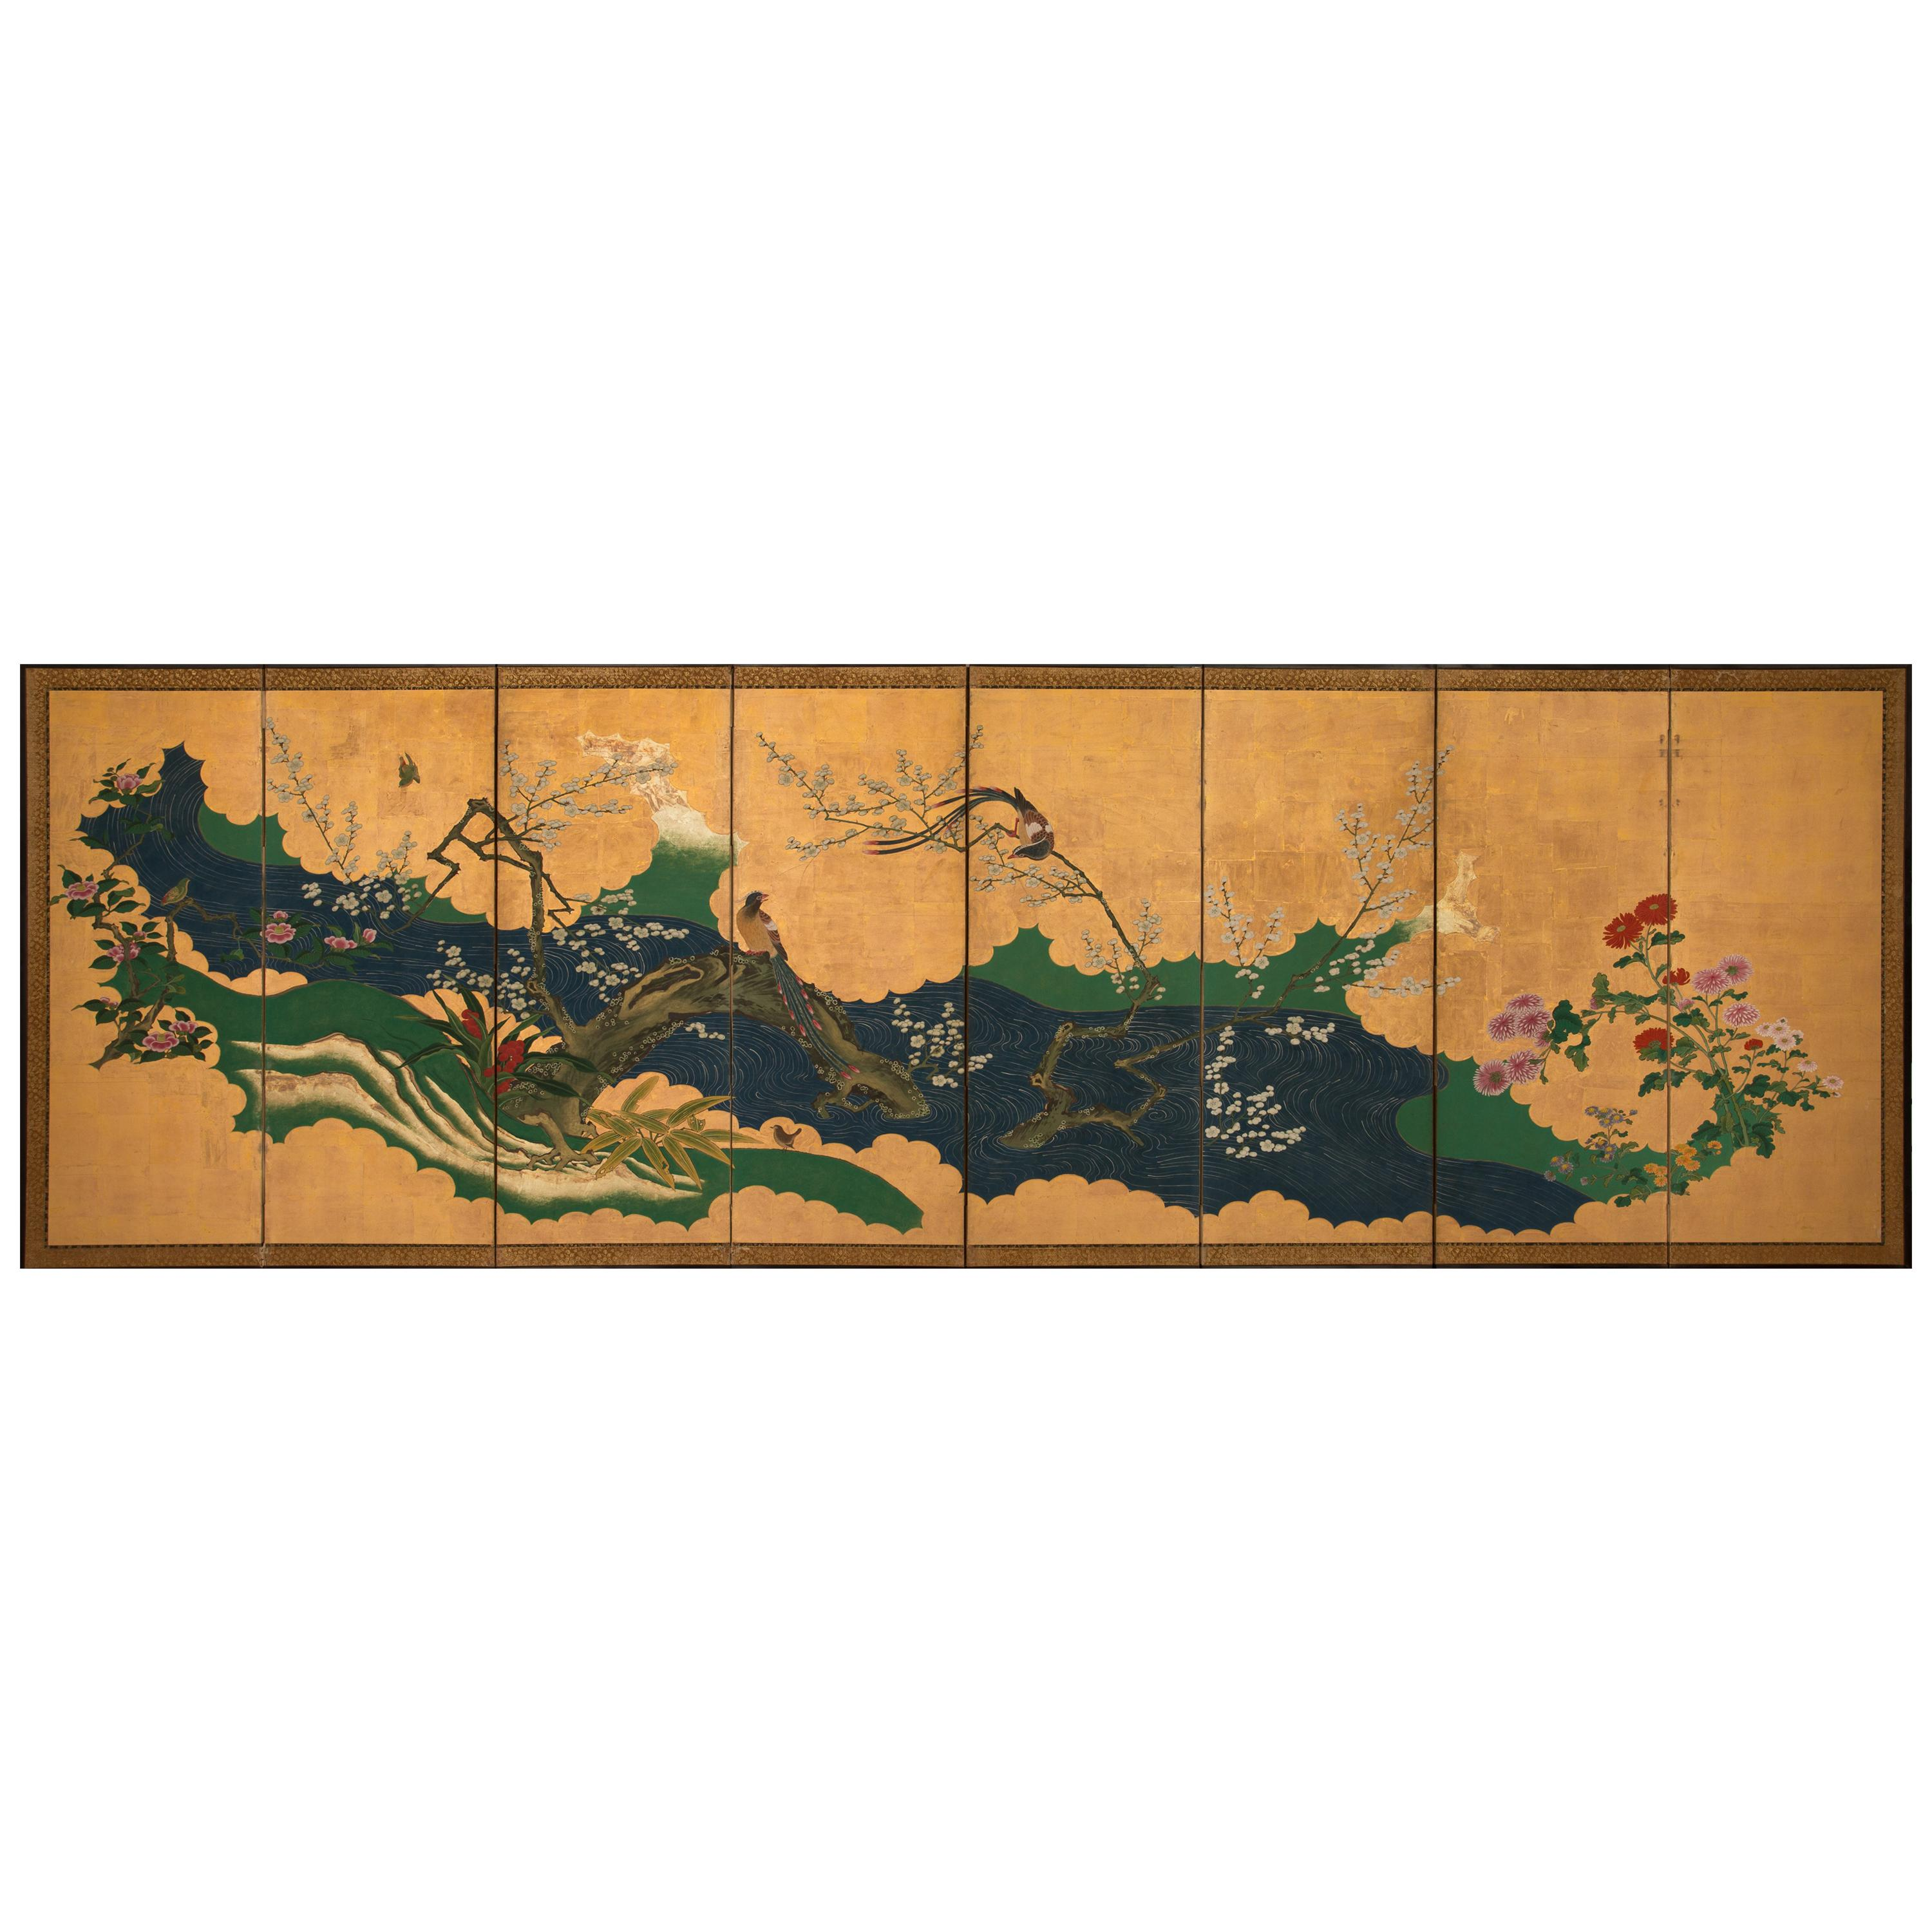 Japanese Folding Screen with a Spring Landscape, Kano School, 19th Century